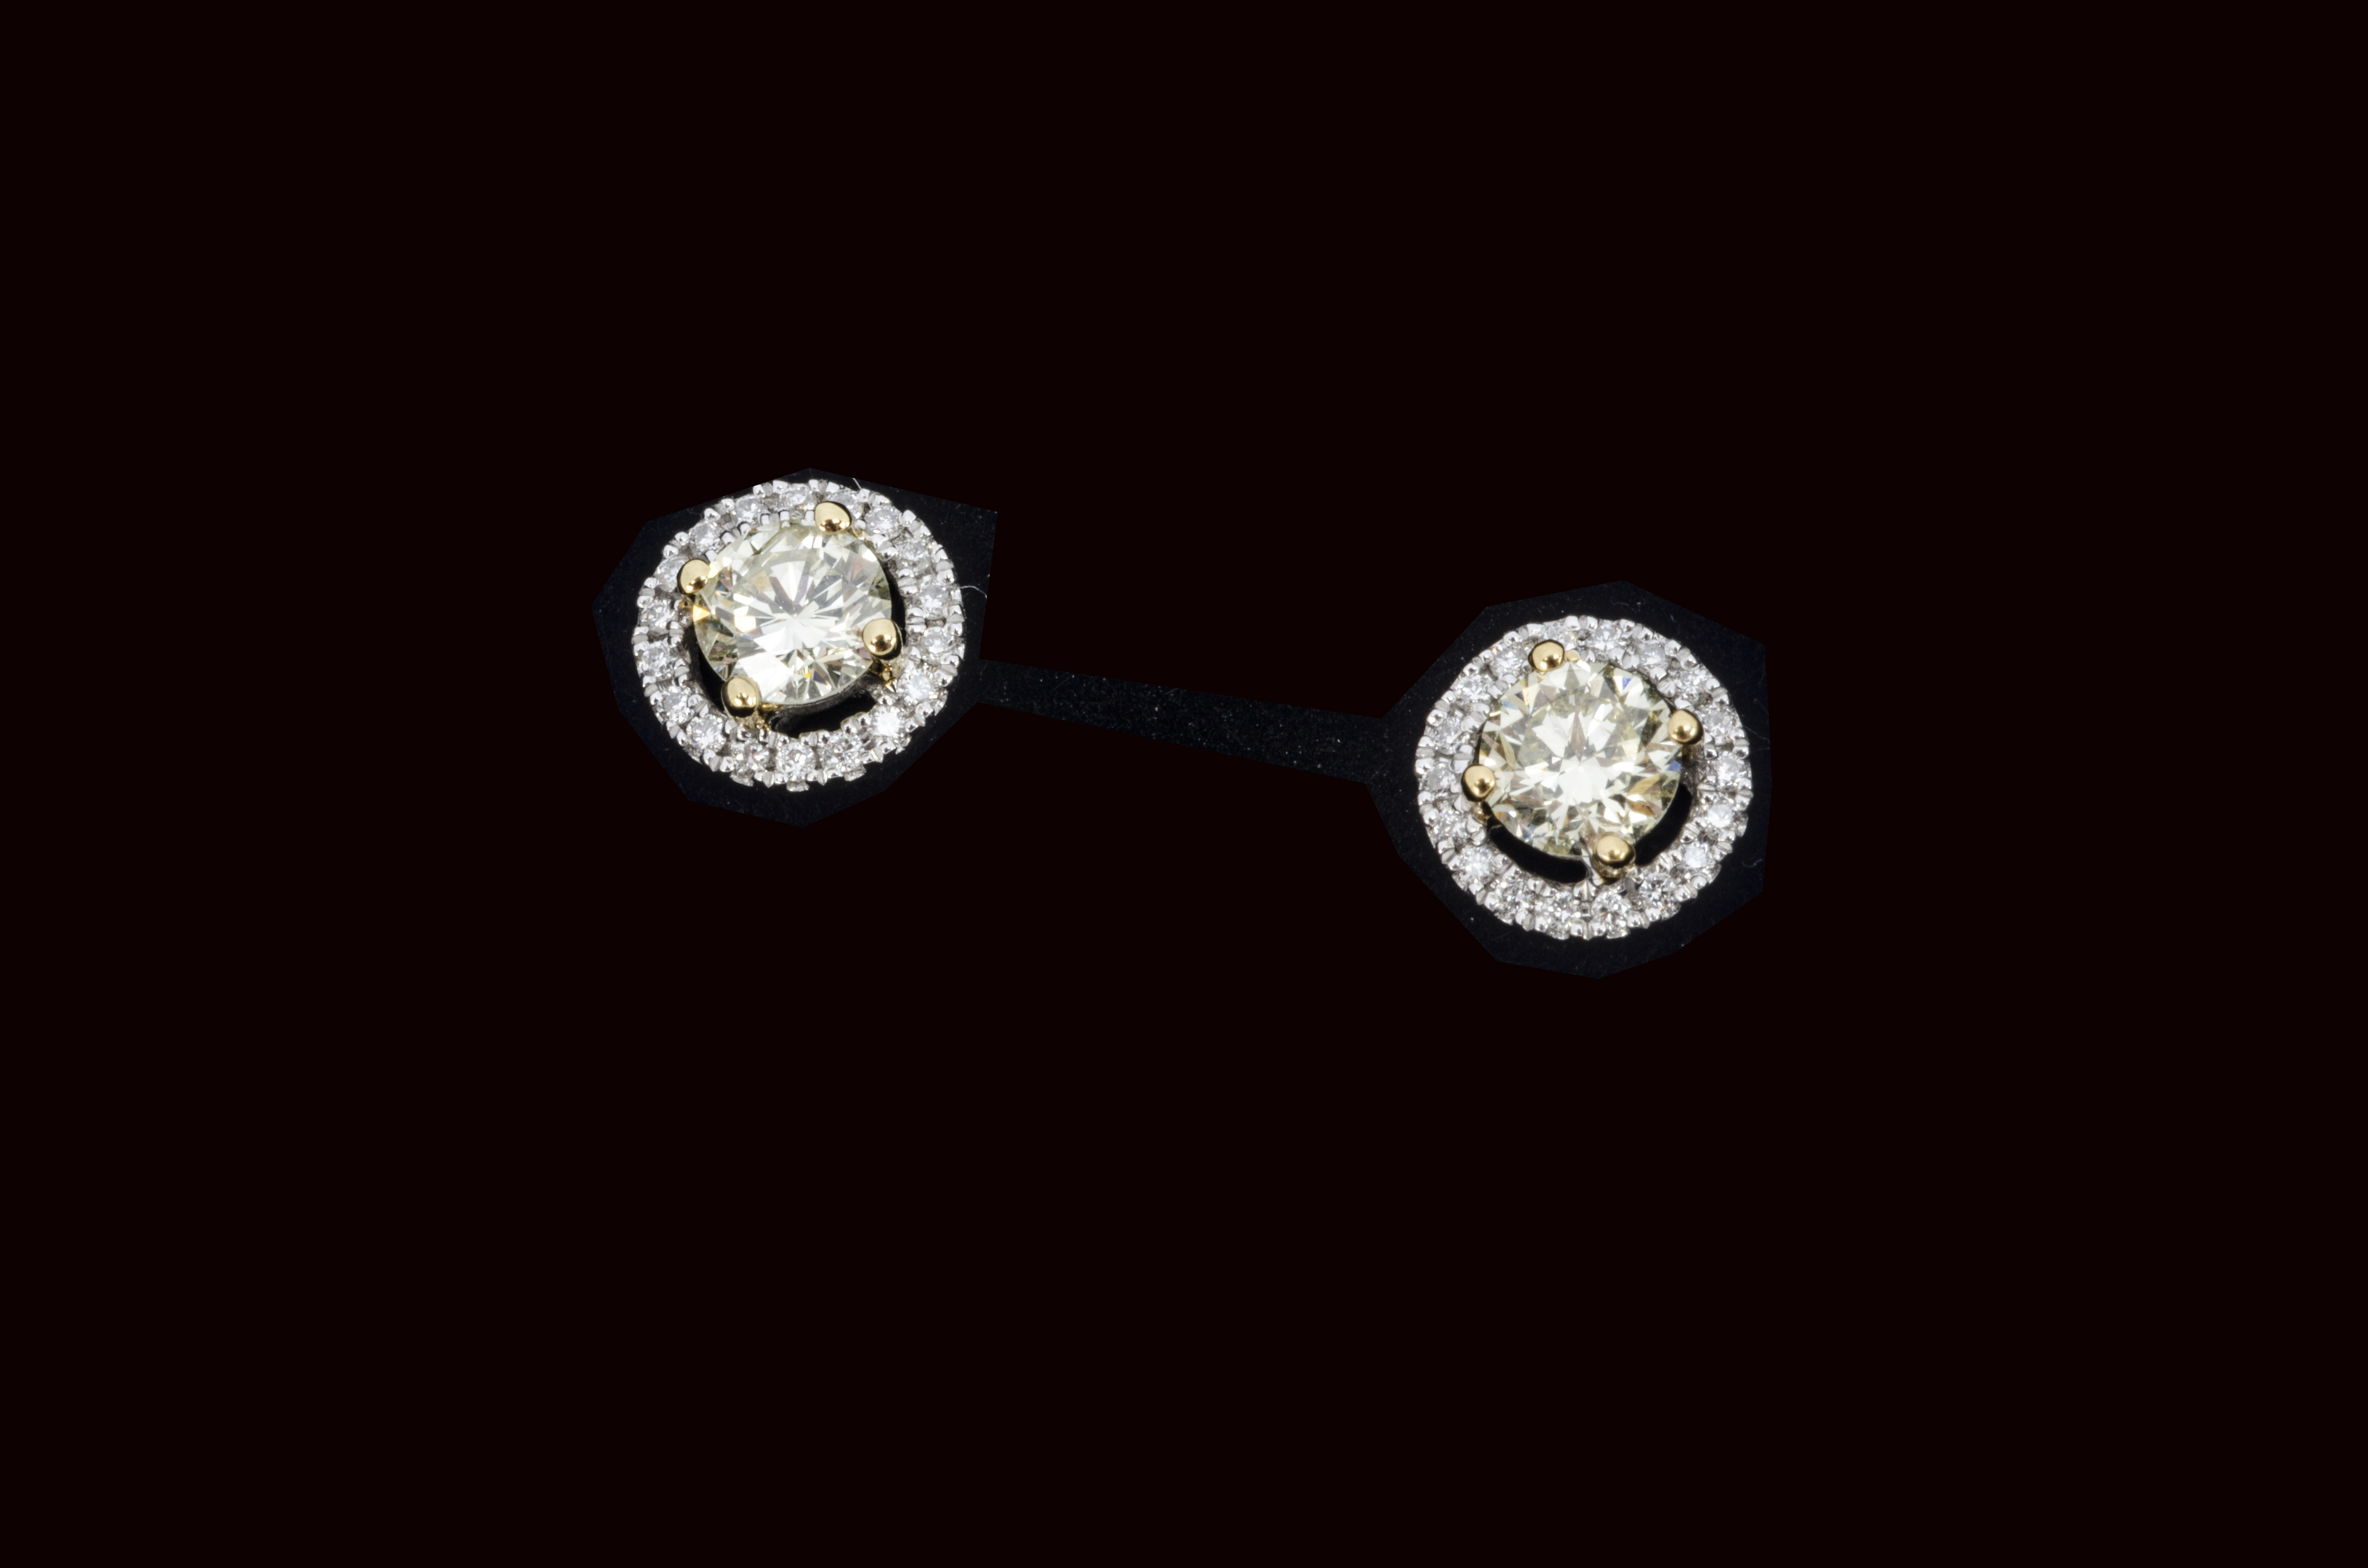 A pair of certificated yellow diamond brilliant cut colourless diamond ear studs, the round